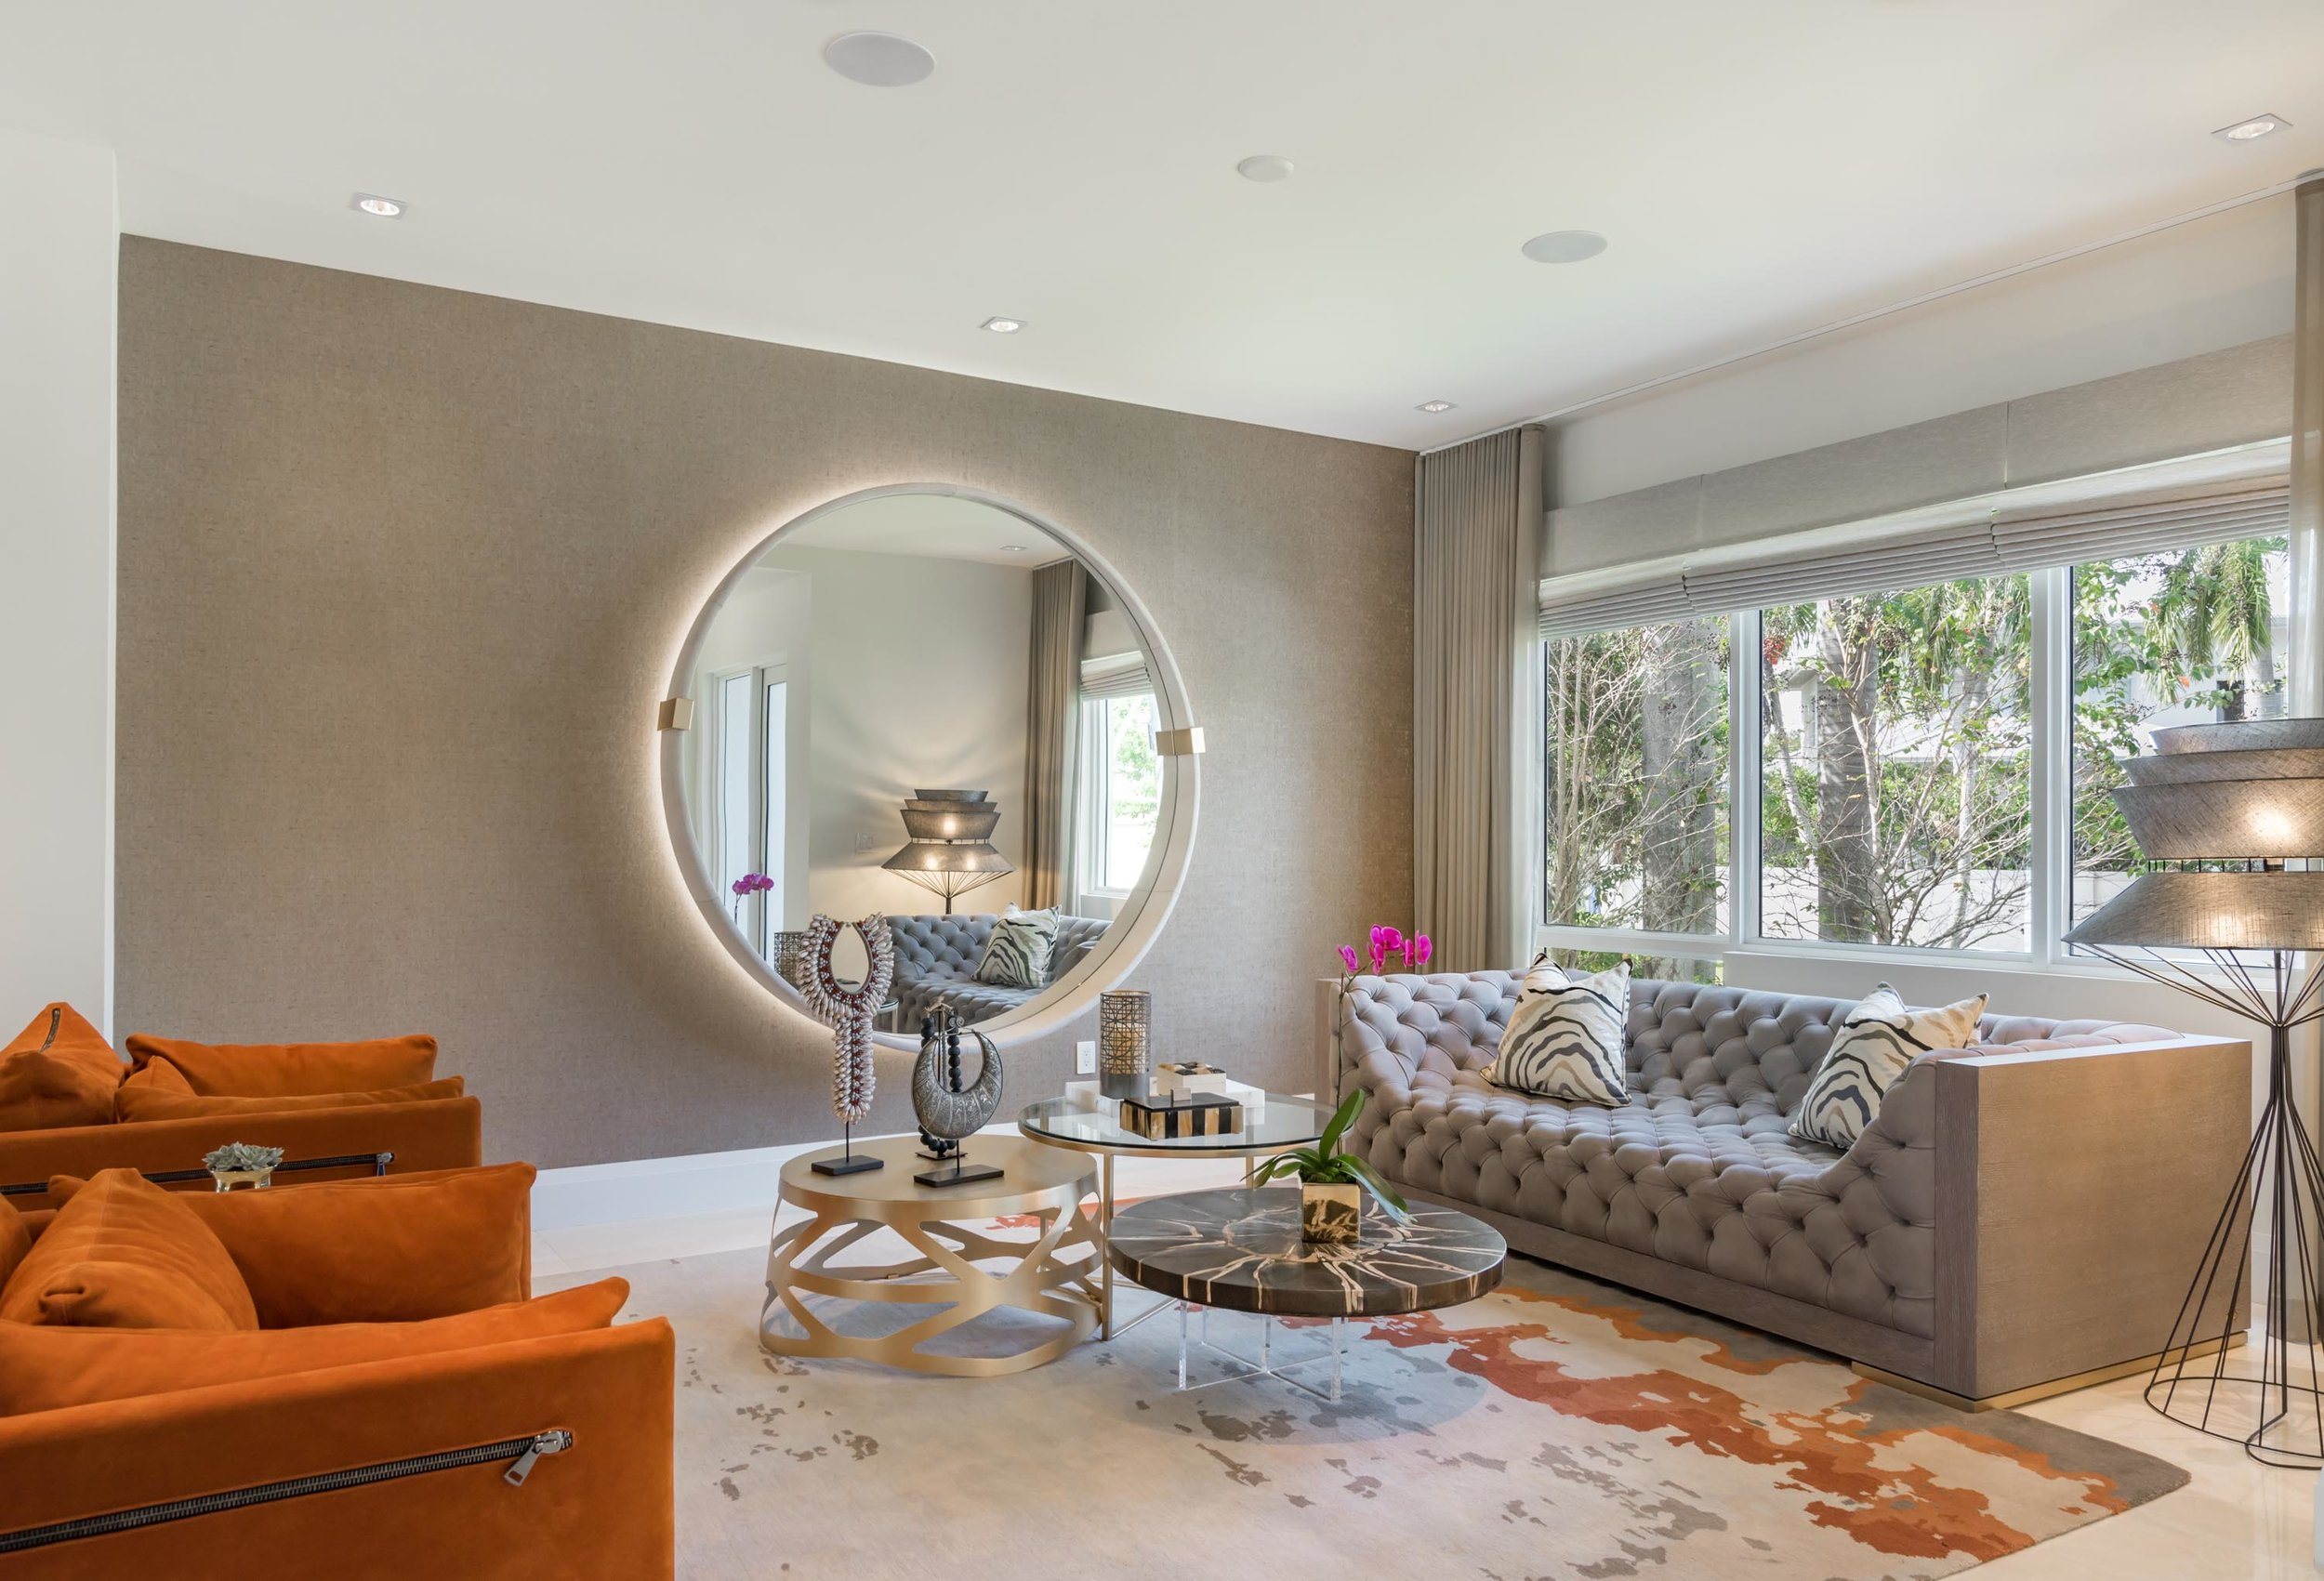 Living room with large round mirror, gray buttoned sofa, brown armchair, round modern style tables and glass window